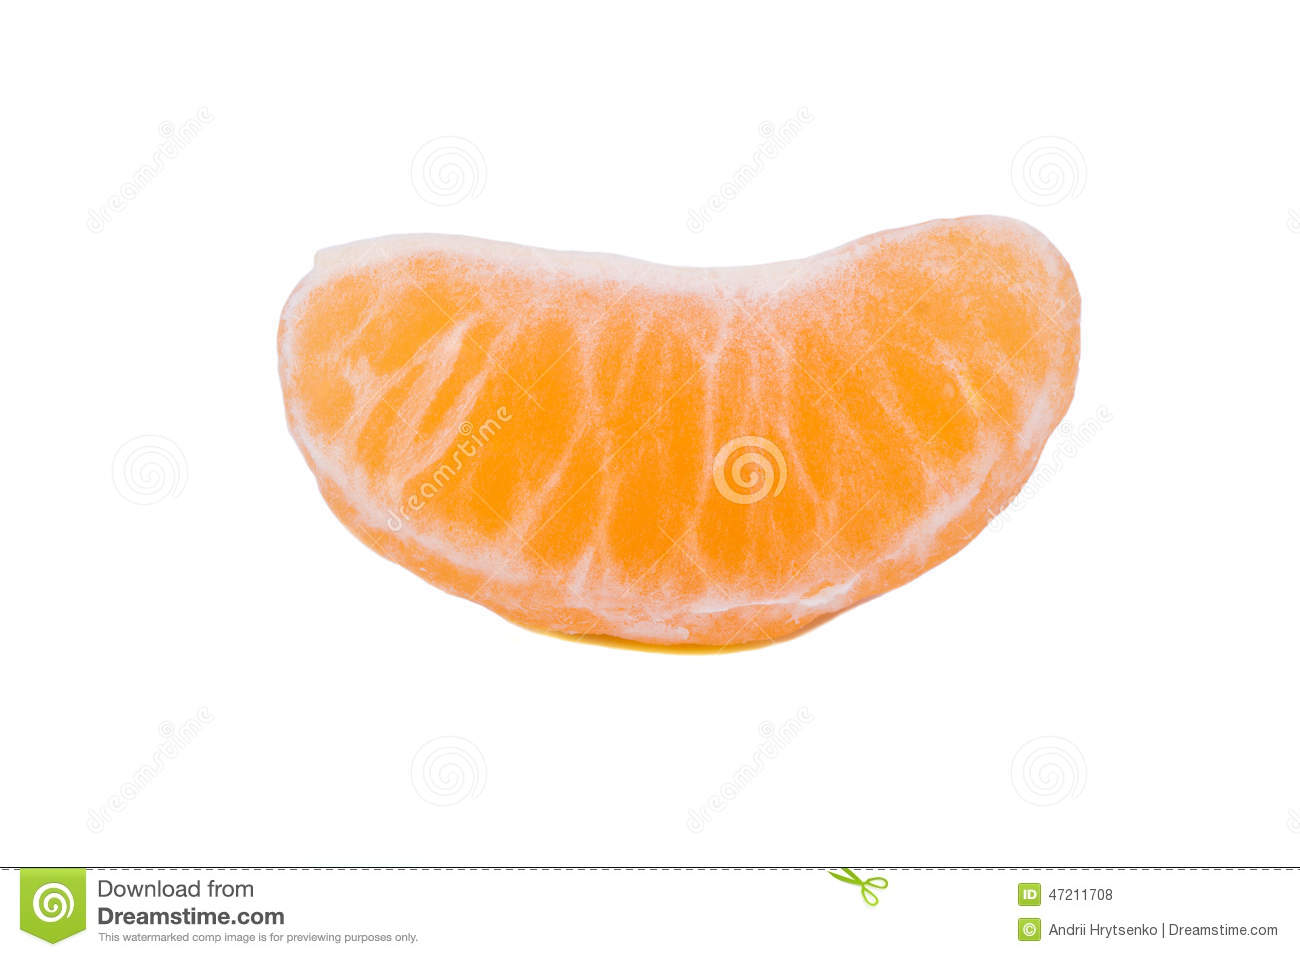 A Slice of Mandarin